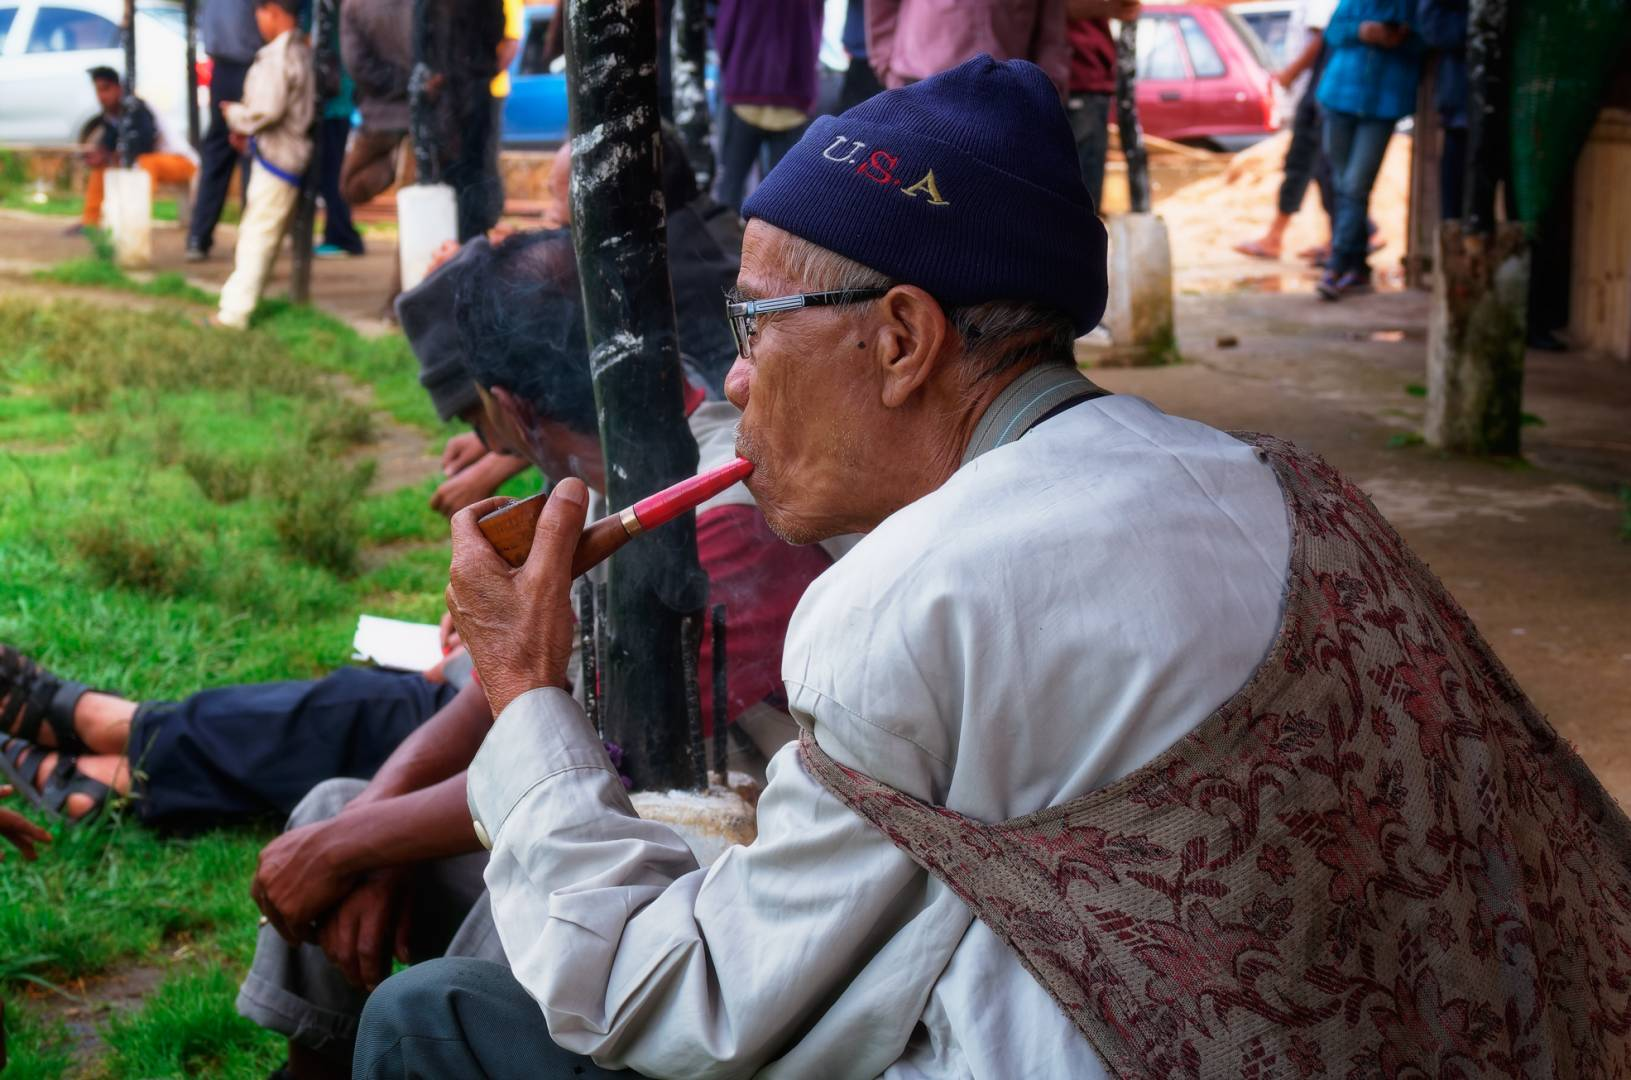 An archer smokes his pipe. The contests are held twice a day at 3.30 pm and 4.30 pm. Each archer is paid 300 rupees